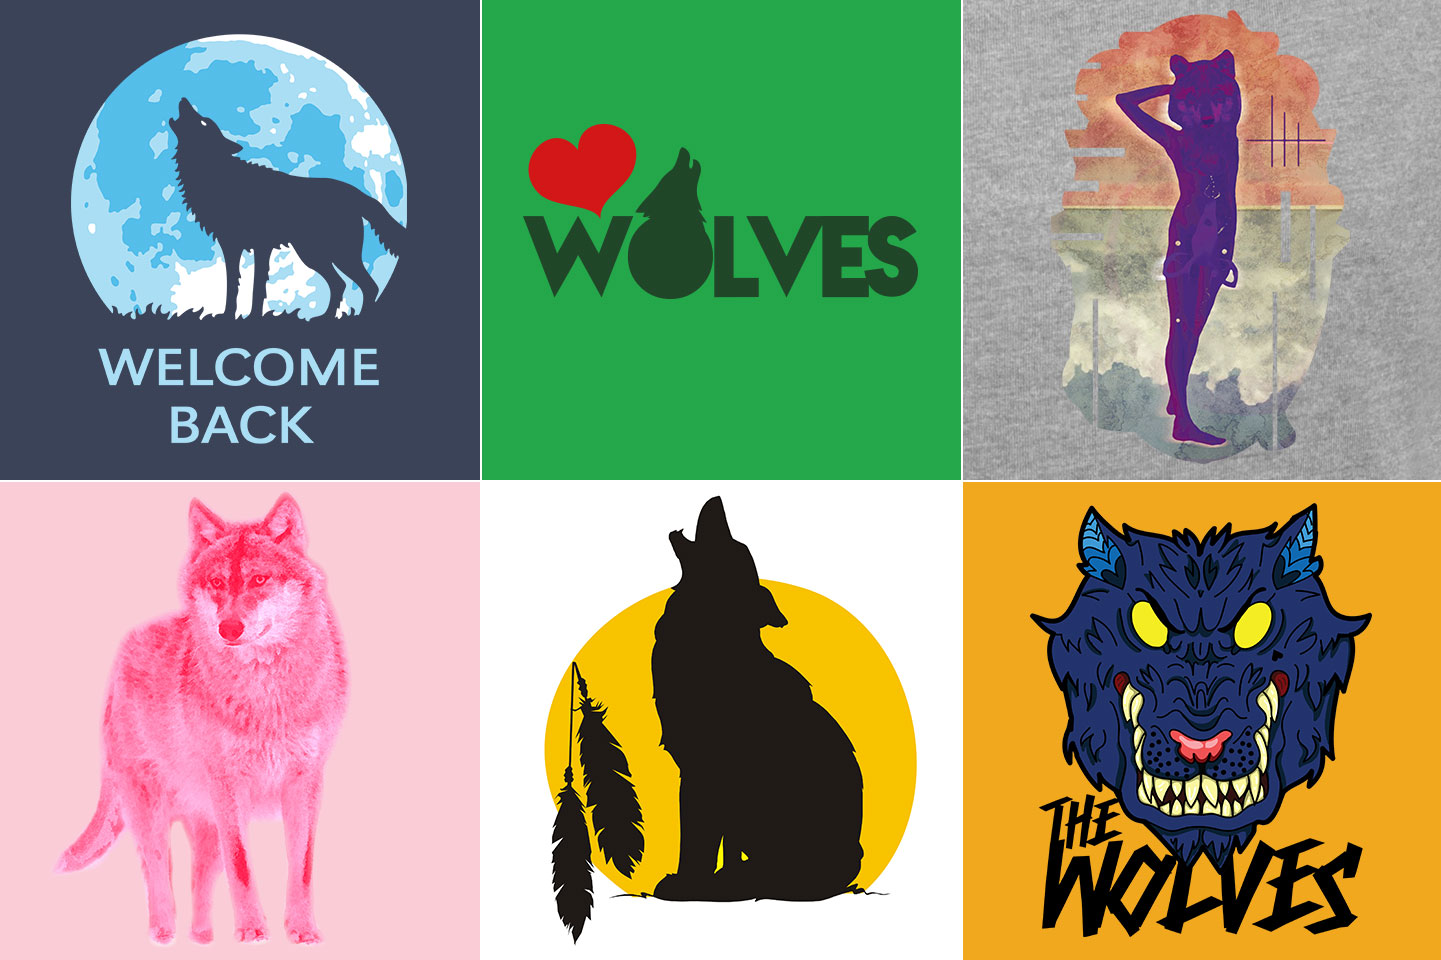 Wolf T-Shirts: Wolves are the New Owls